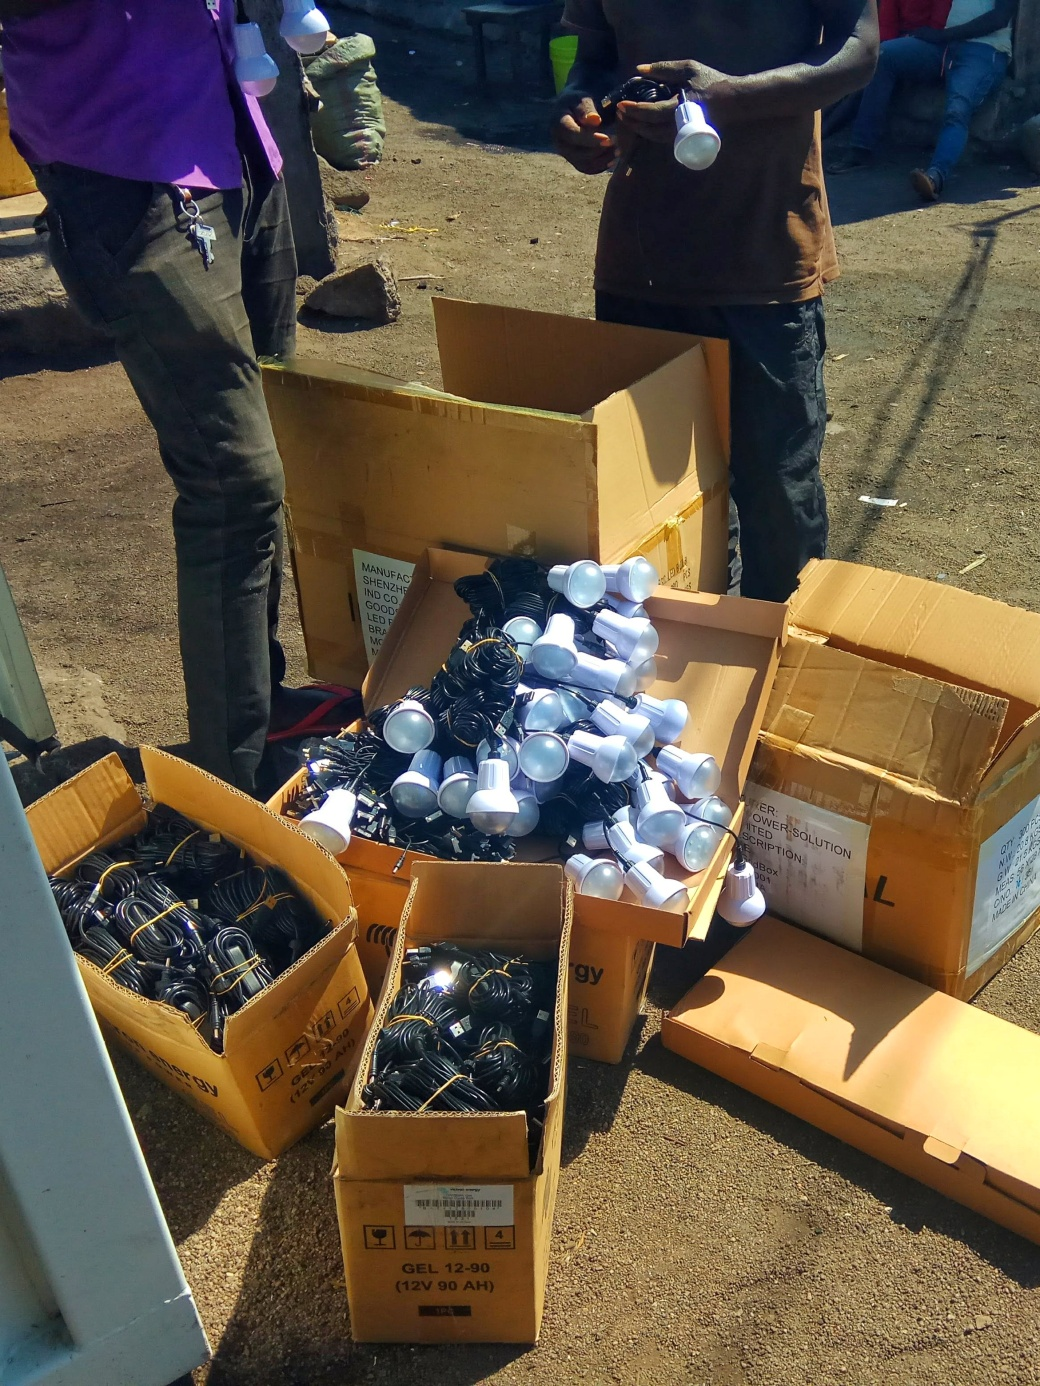 Bundles of lights and switches to distribute to the community